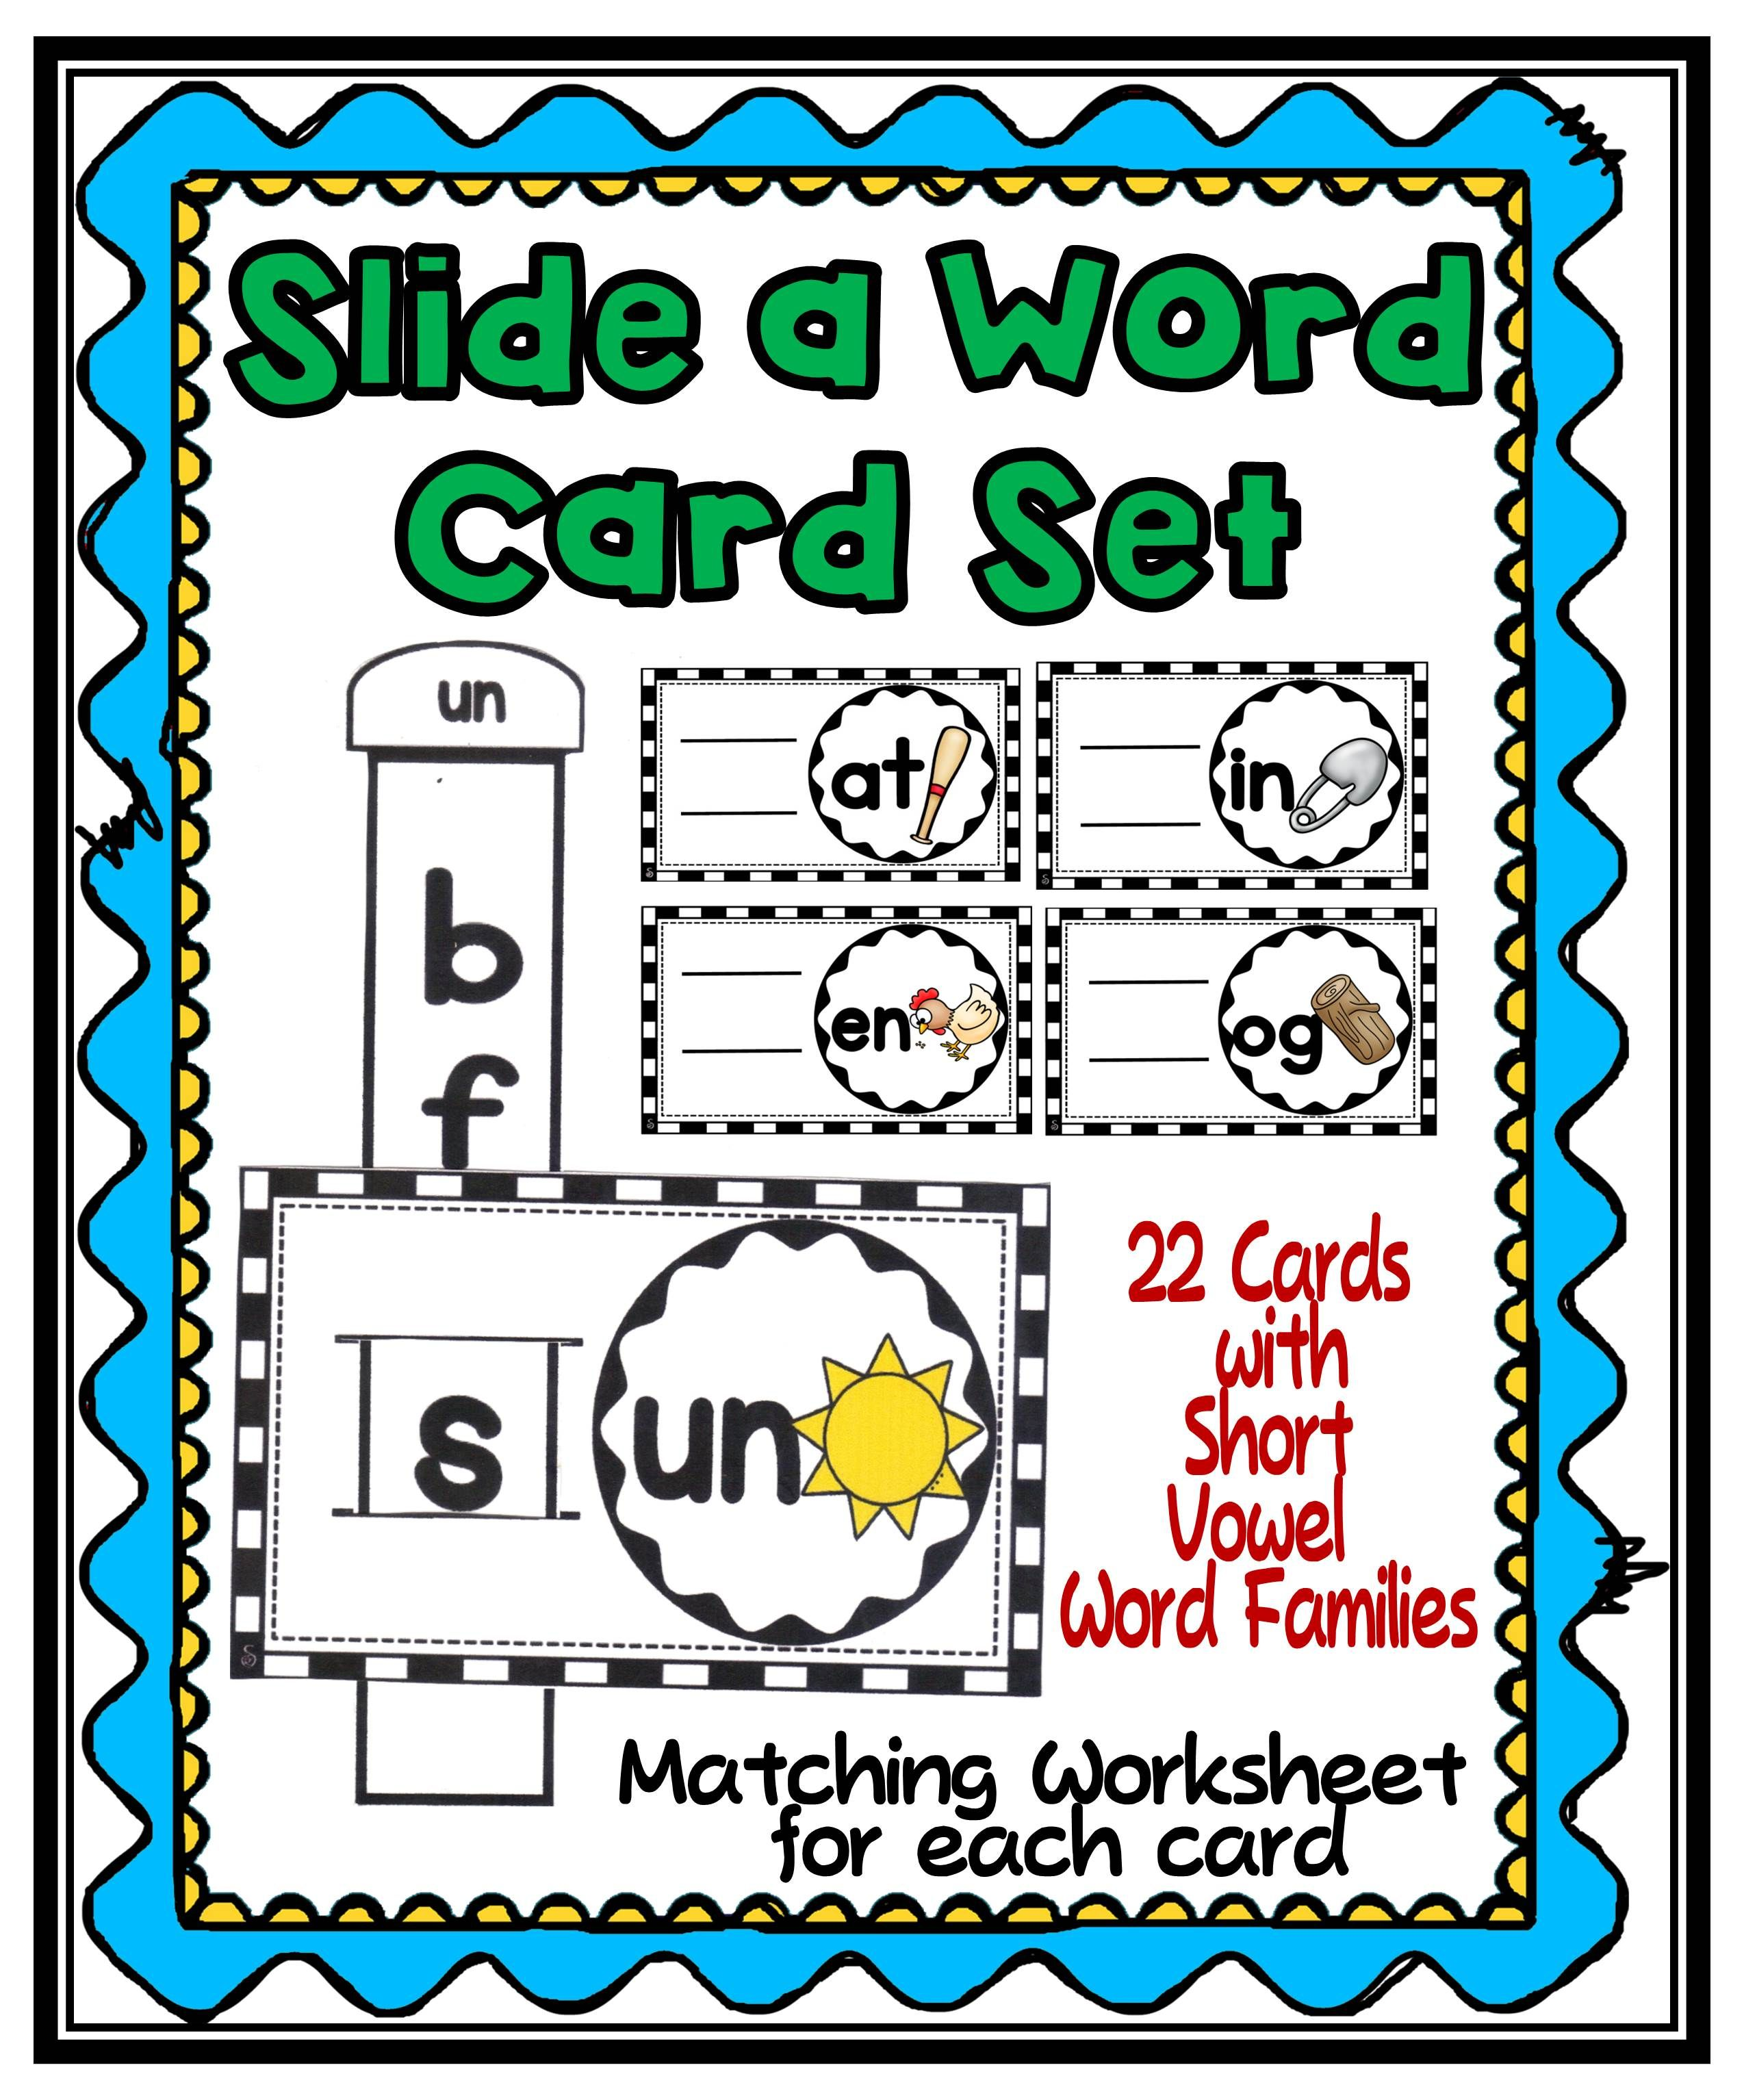 Slide A Word Short Vowels Family Set